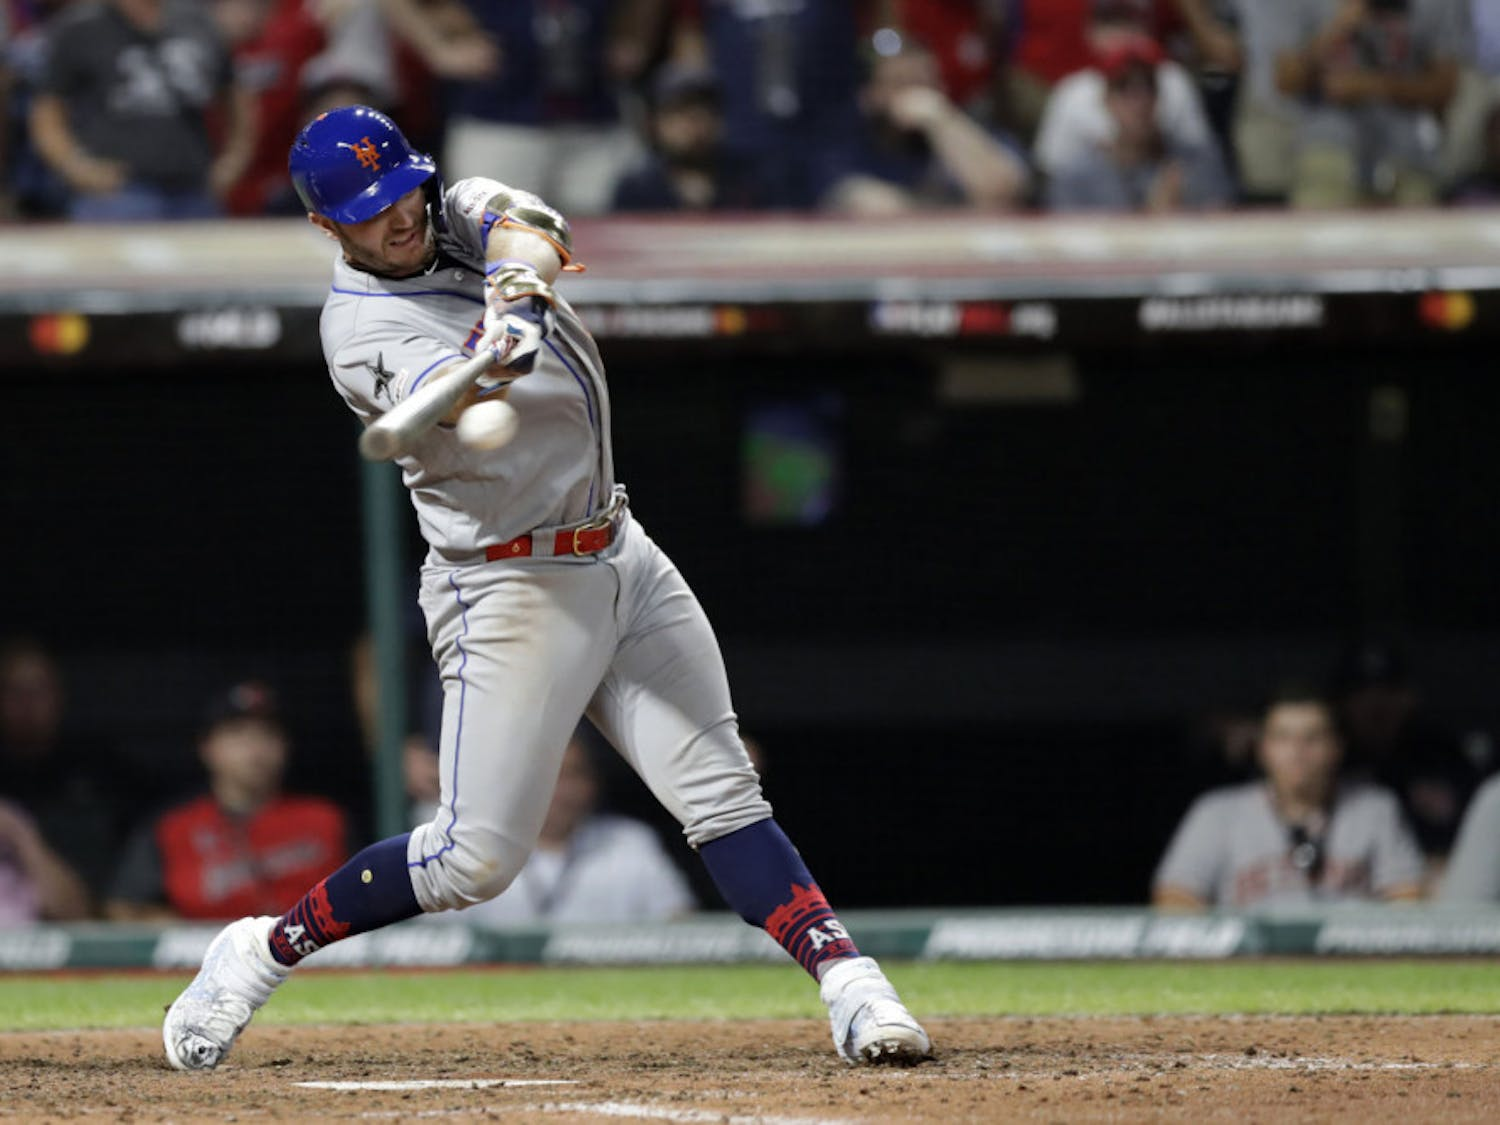 Former UF first baseman Pete Alonso was the only Gator to make it to the MLB All-Star Game this year, where he went 1-2 with 2 RBIs in the National League's 4-3 defeat.